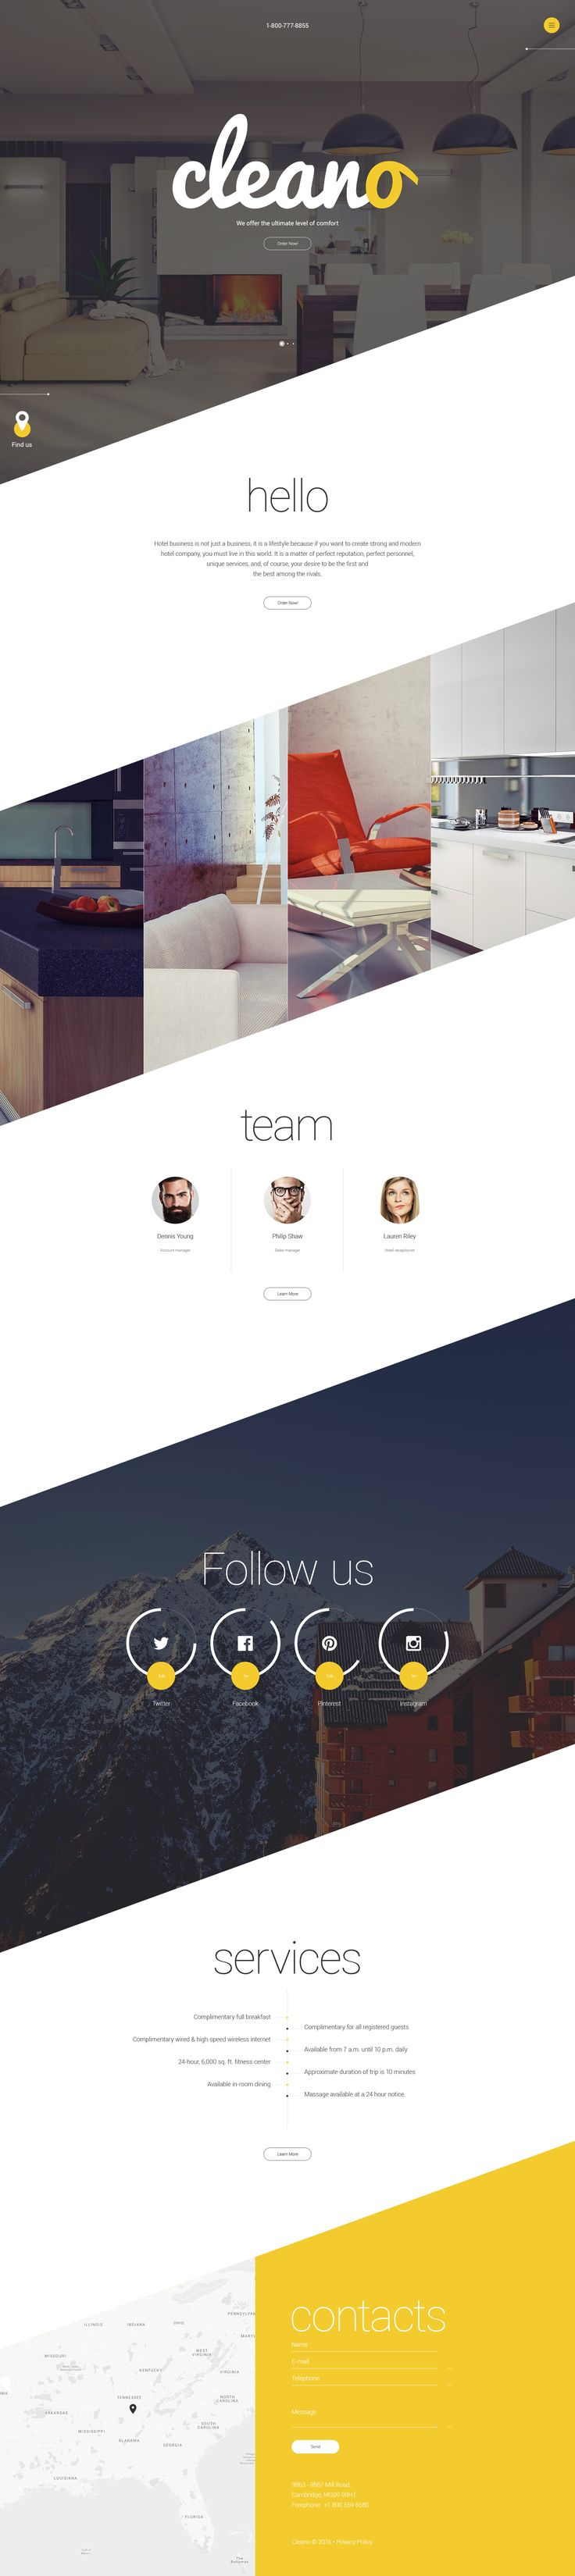 Hotel WebSite Template http://www.templatemonster.com/website-templates/cleano-website-template-57869.html